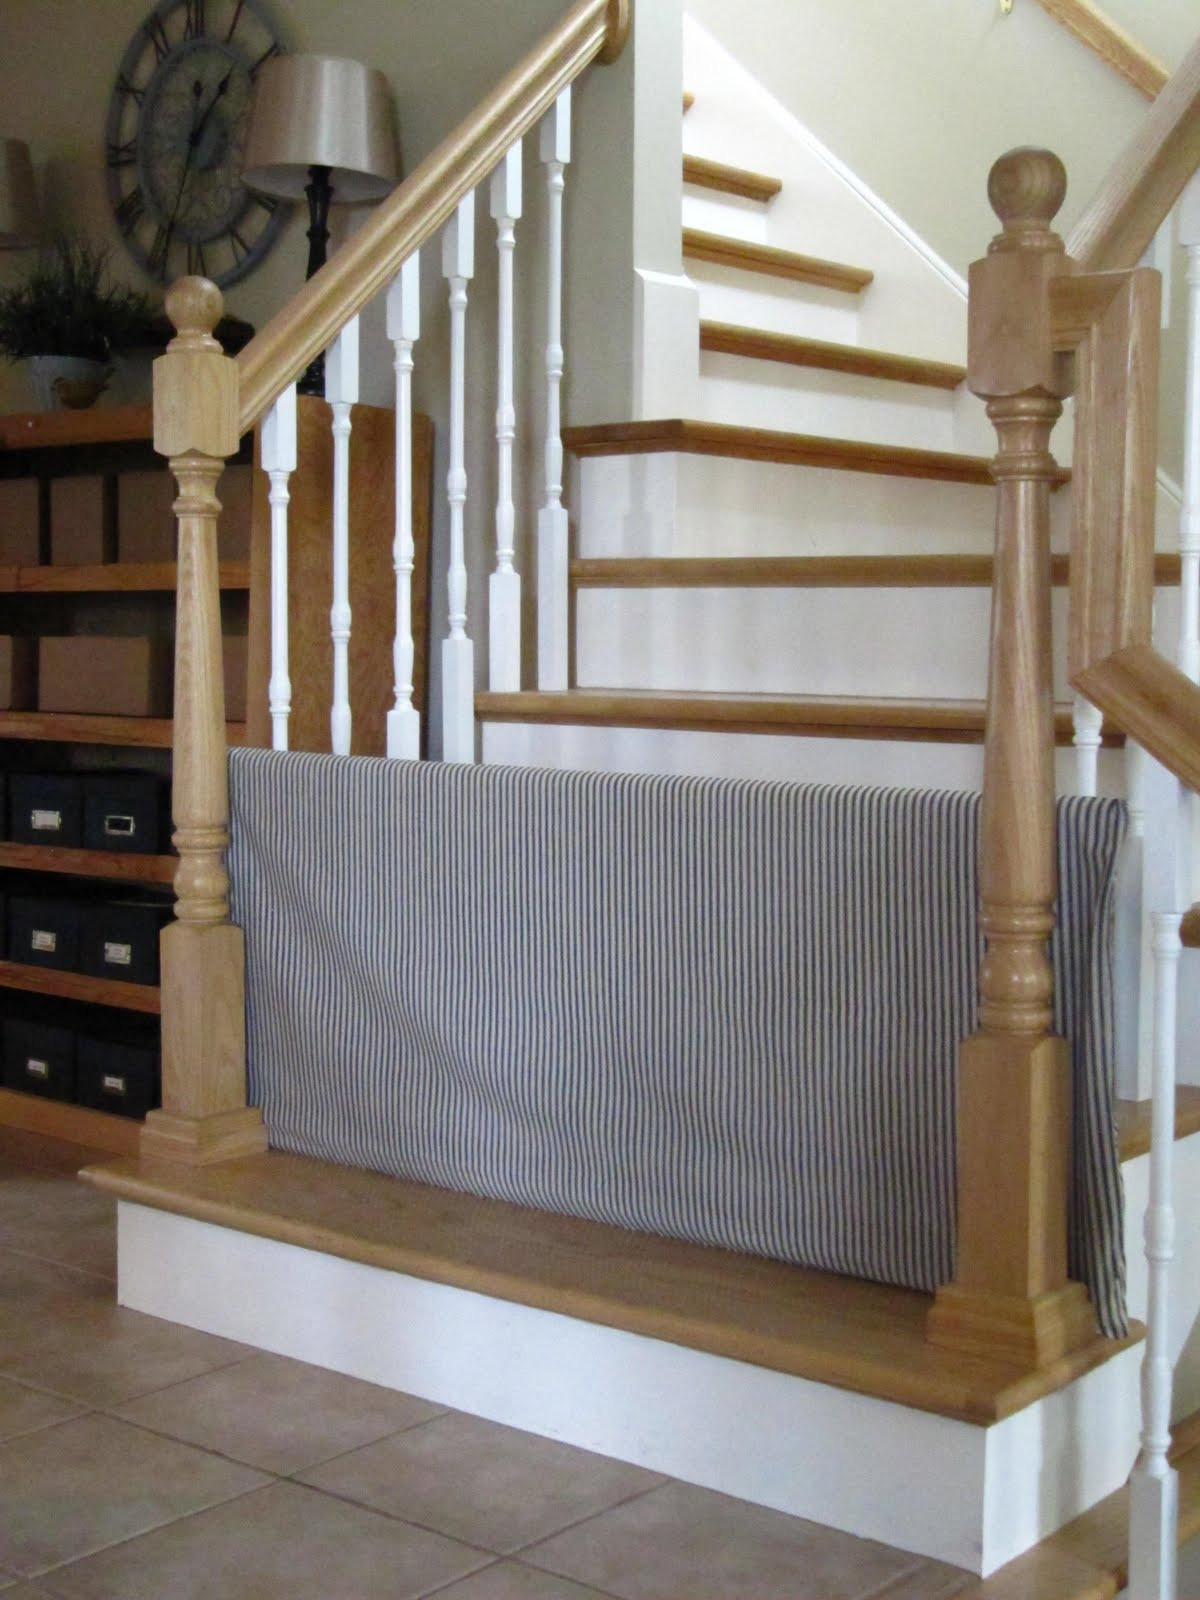 Best ideas about Dog Gate For Stairs . Save or Pin Tool Time Tuesday PVC Dog Gate and Stair Baskets Too Now.